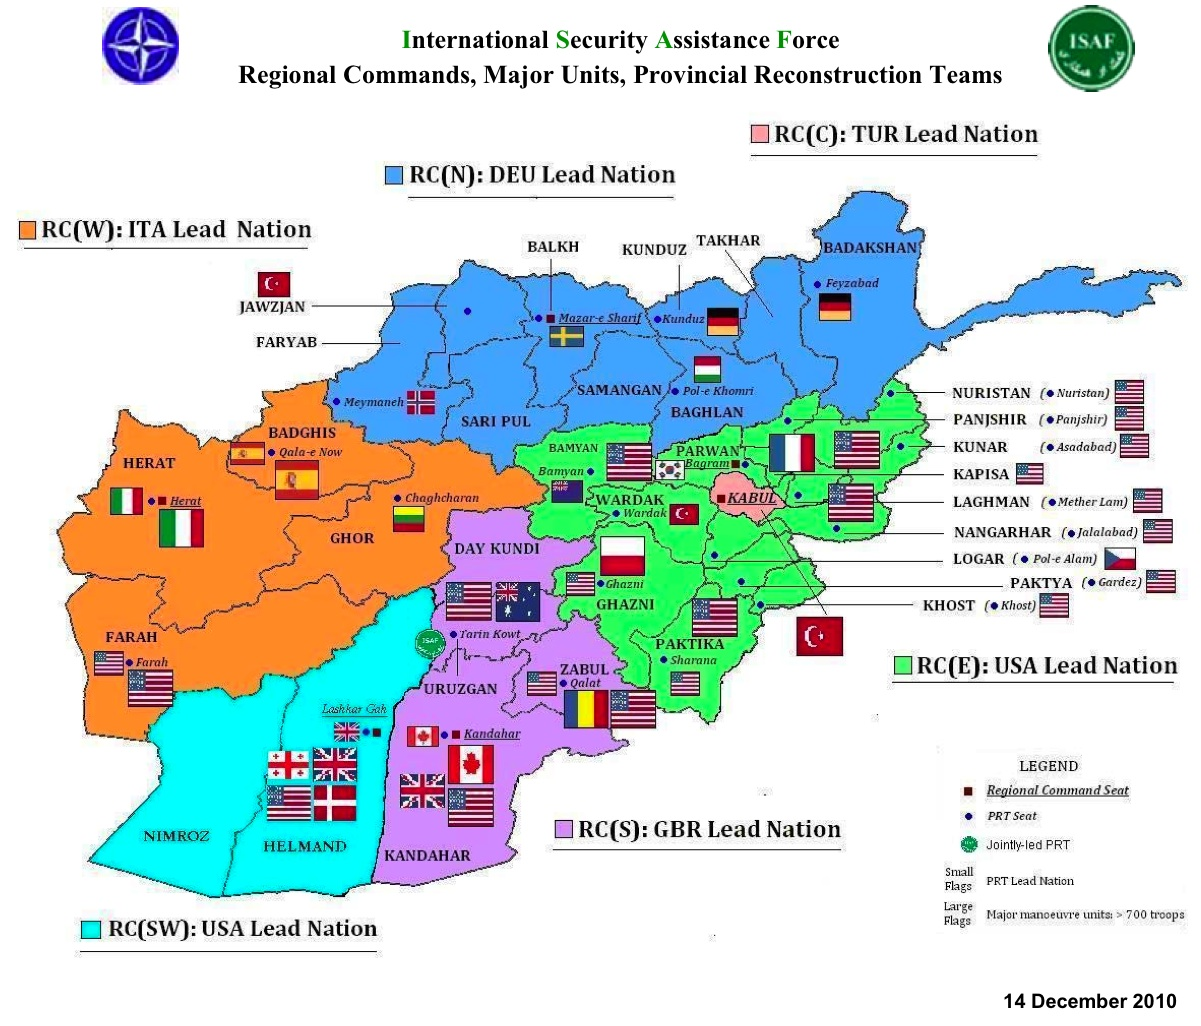 here s the current placemat for isaf forces effective 14 dec 10